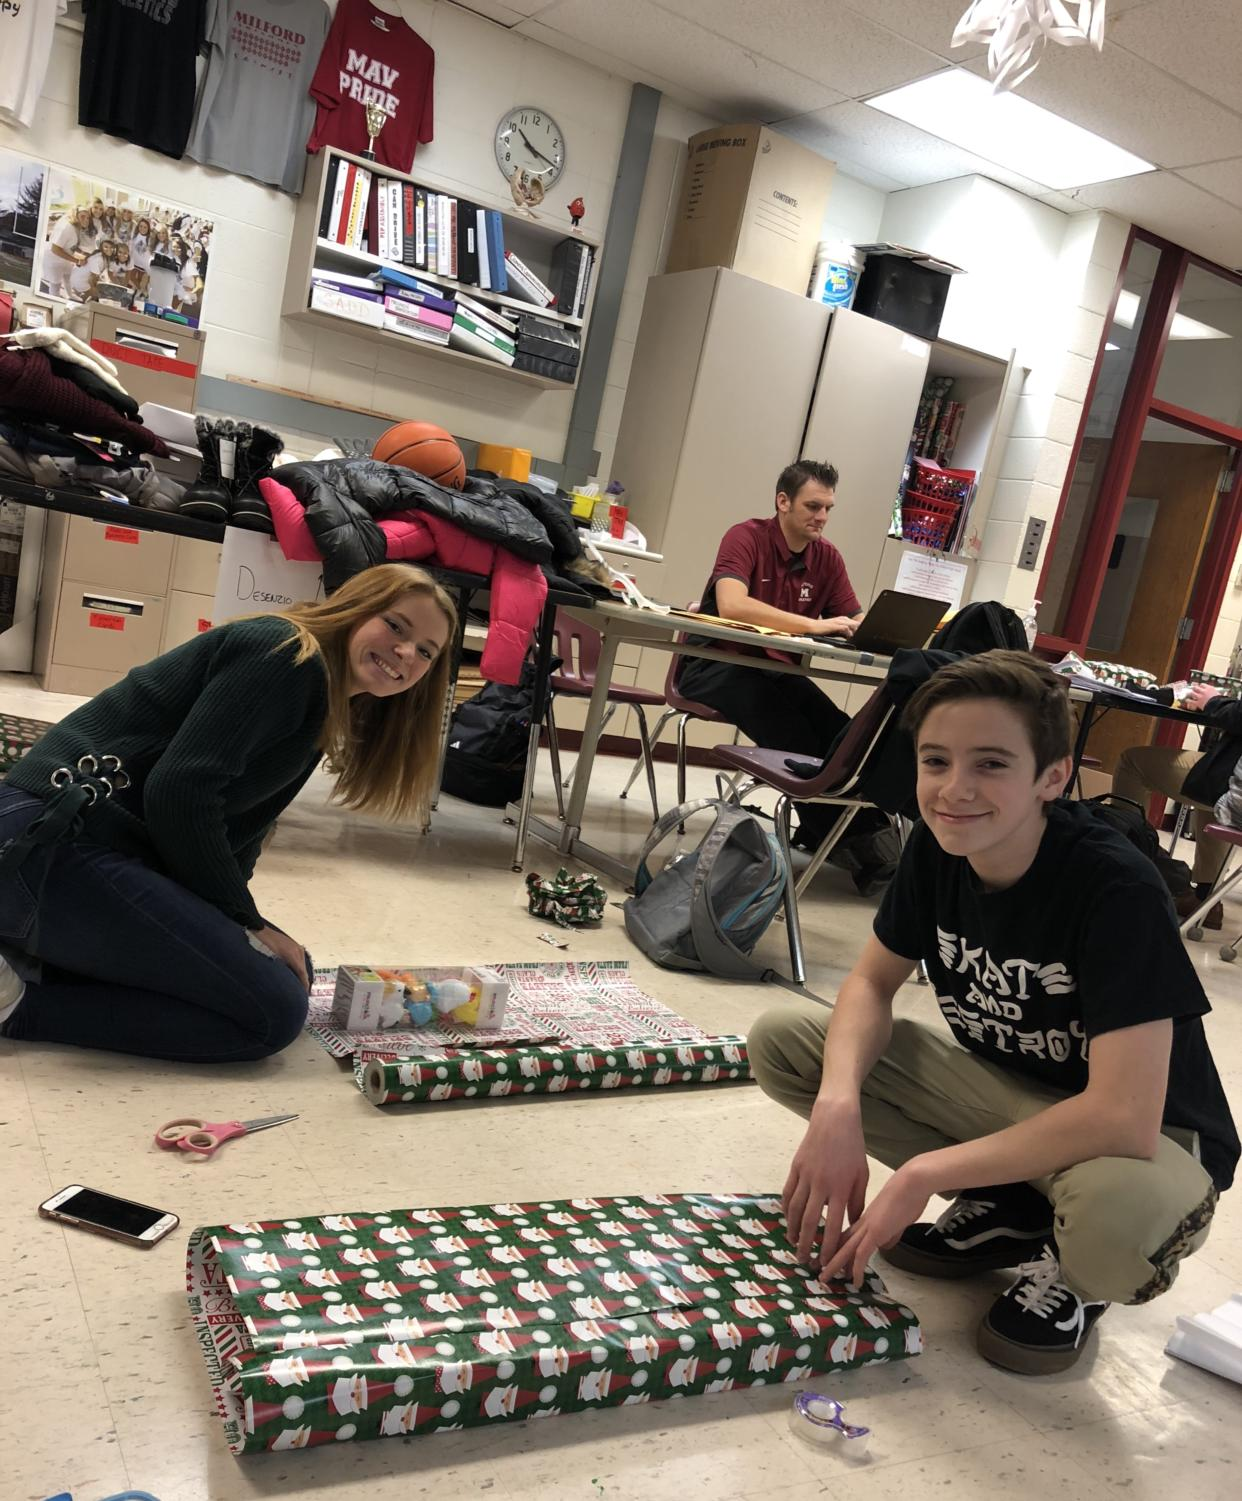 Senior Hailey Phipps (left) and sophomore Aidan Wilson (right) wrapping gifts they bought for their designated Milford Miracles family. (Photo by Abby Knapp)